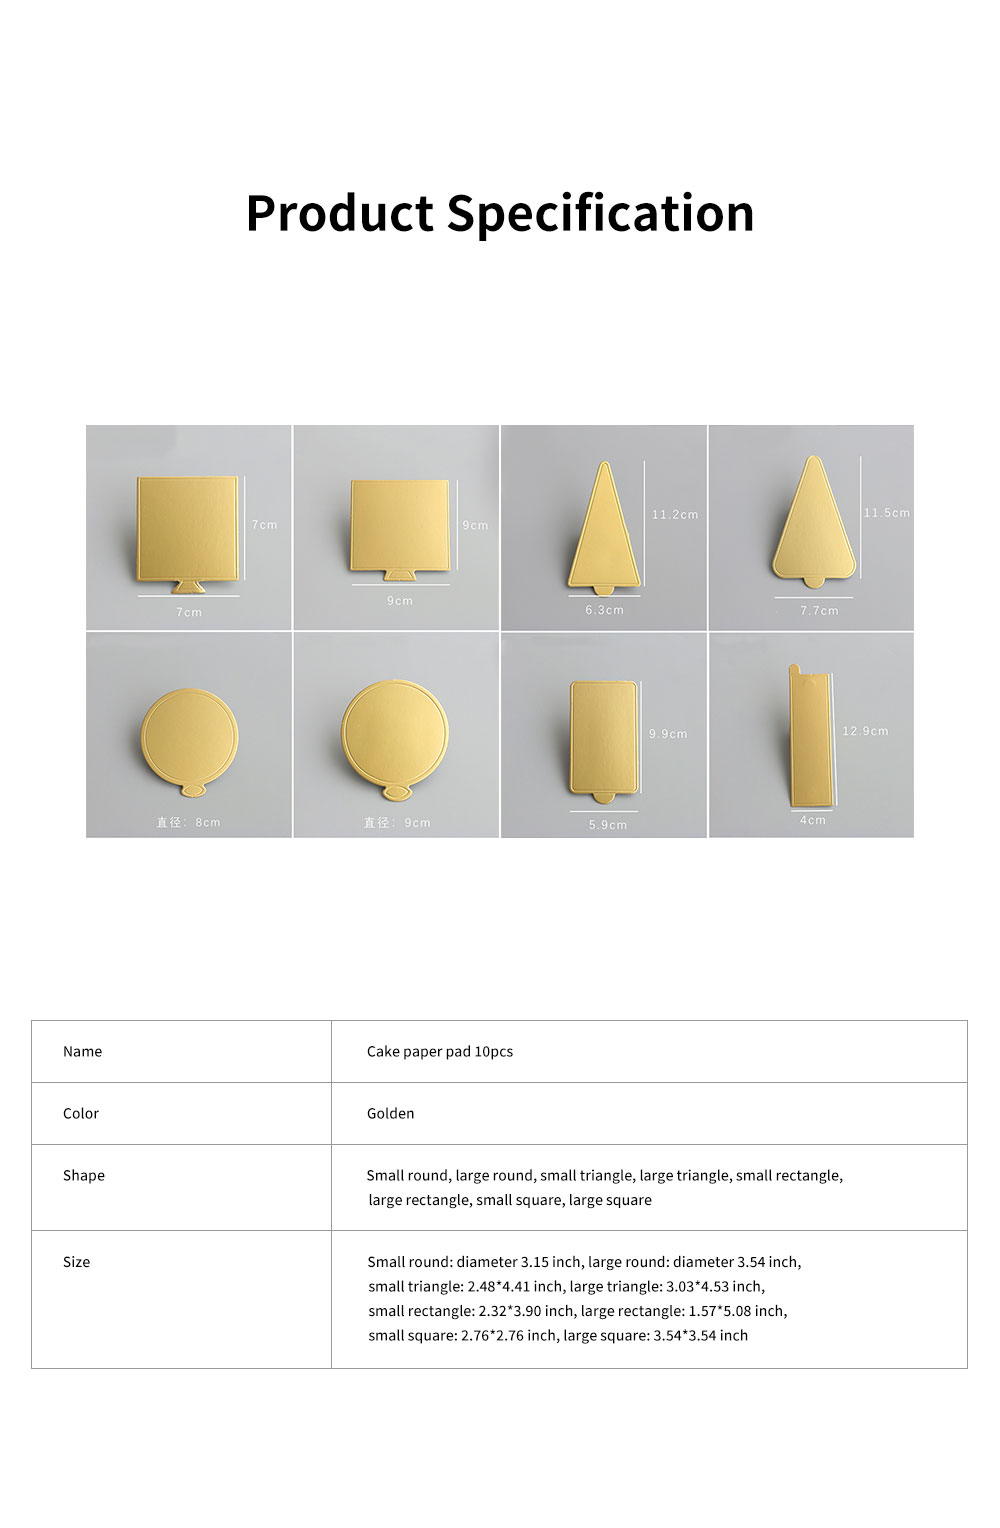 Delicate Golden Waterproof Non-toxic Mousse Cake Paper Pad Dessert Baking Accessories Round Square Triangle Rectangle 10PCS 6